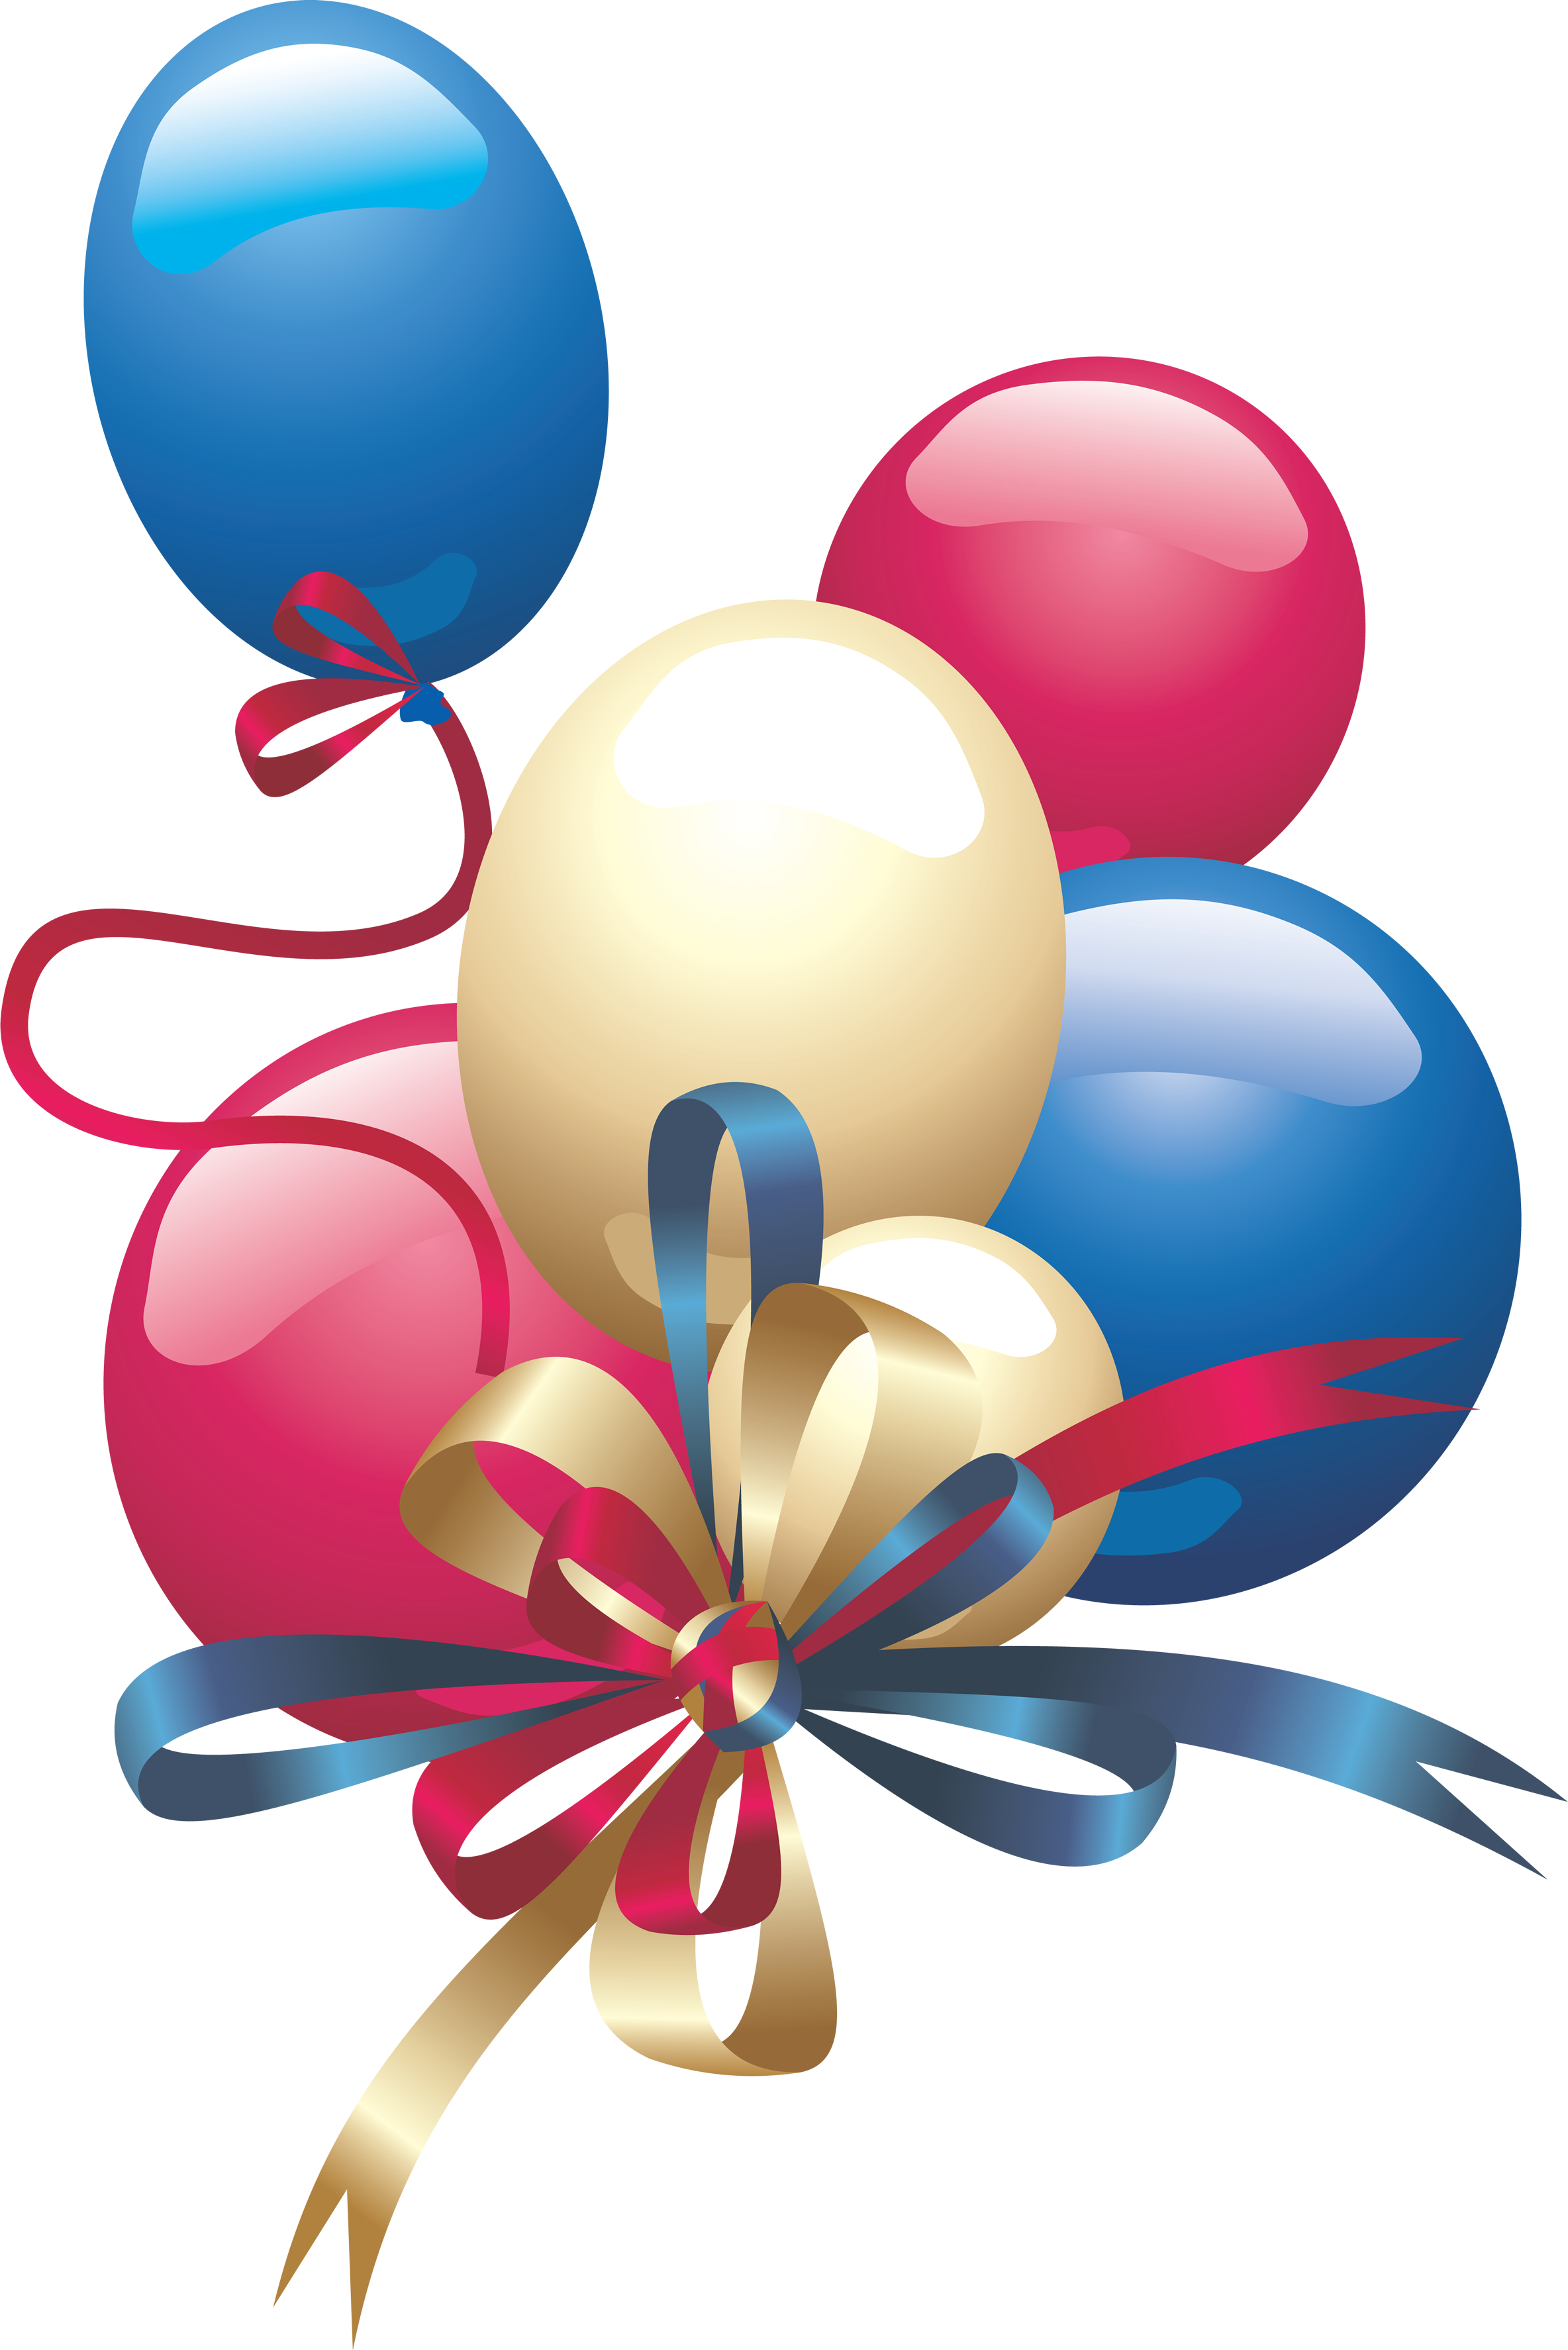 Celebration background png. Balloons eight isolated stock